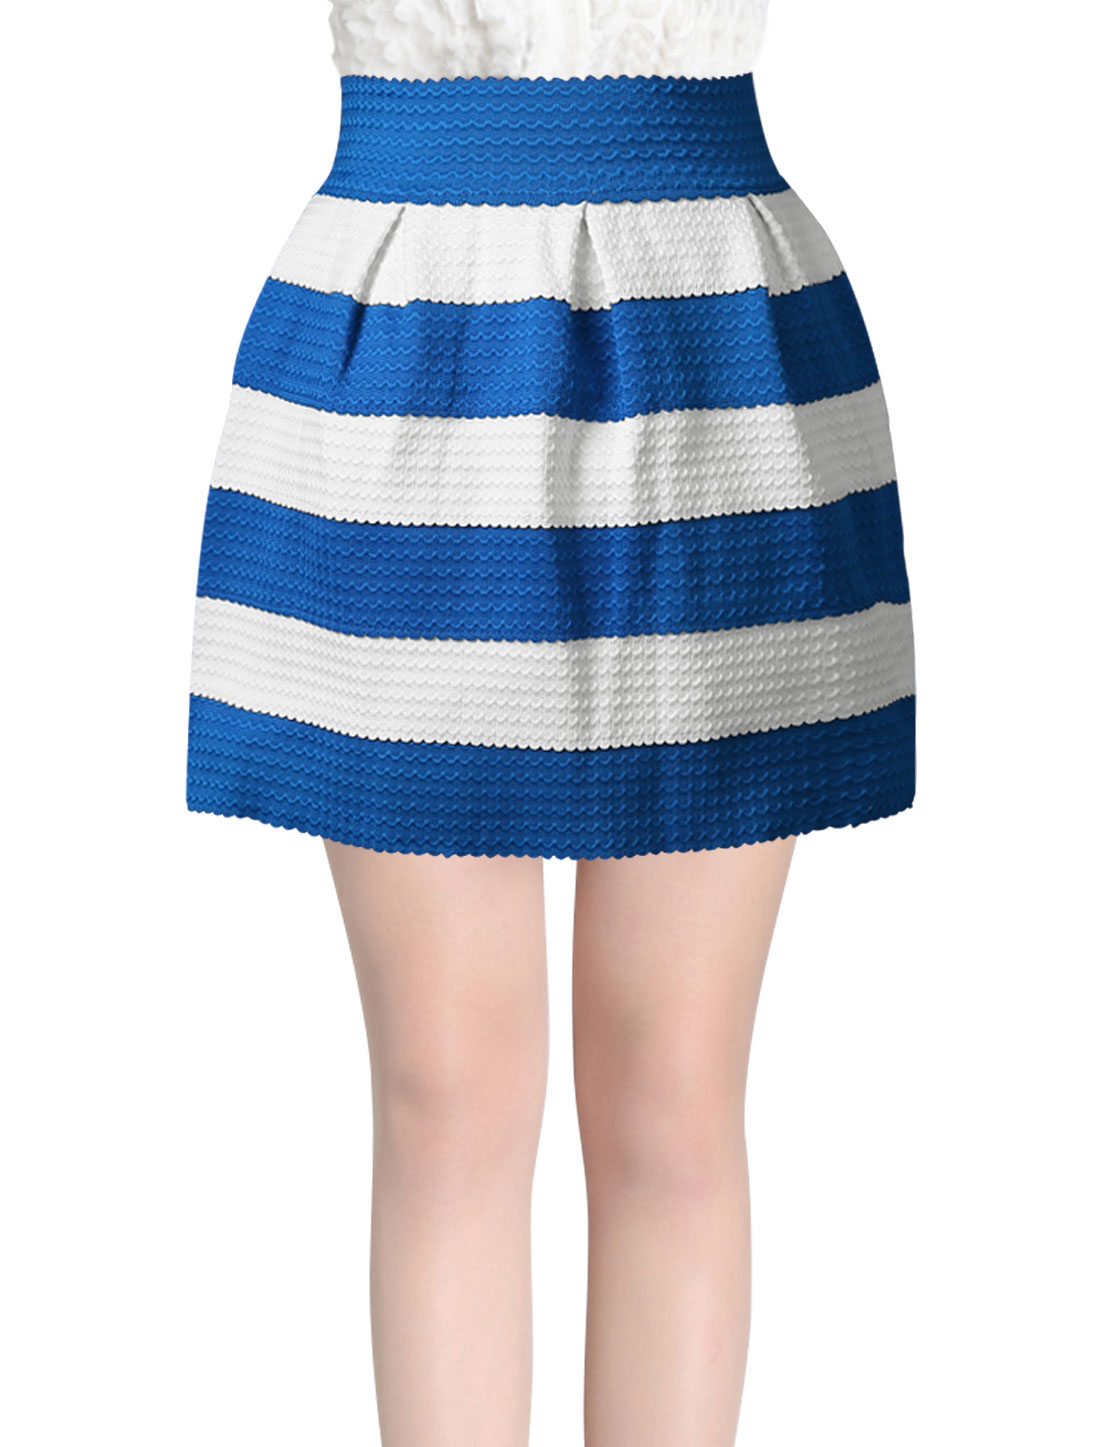 Lady Half Zipper Stretchy Wasit Stripes Casual Mini Skirt Blue White XS